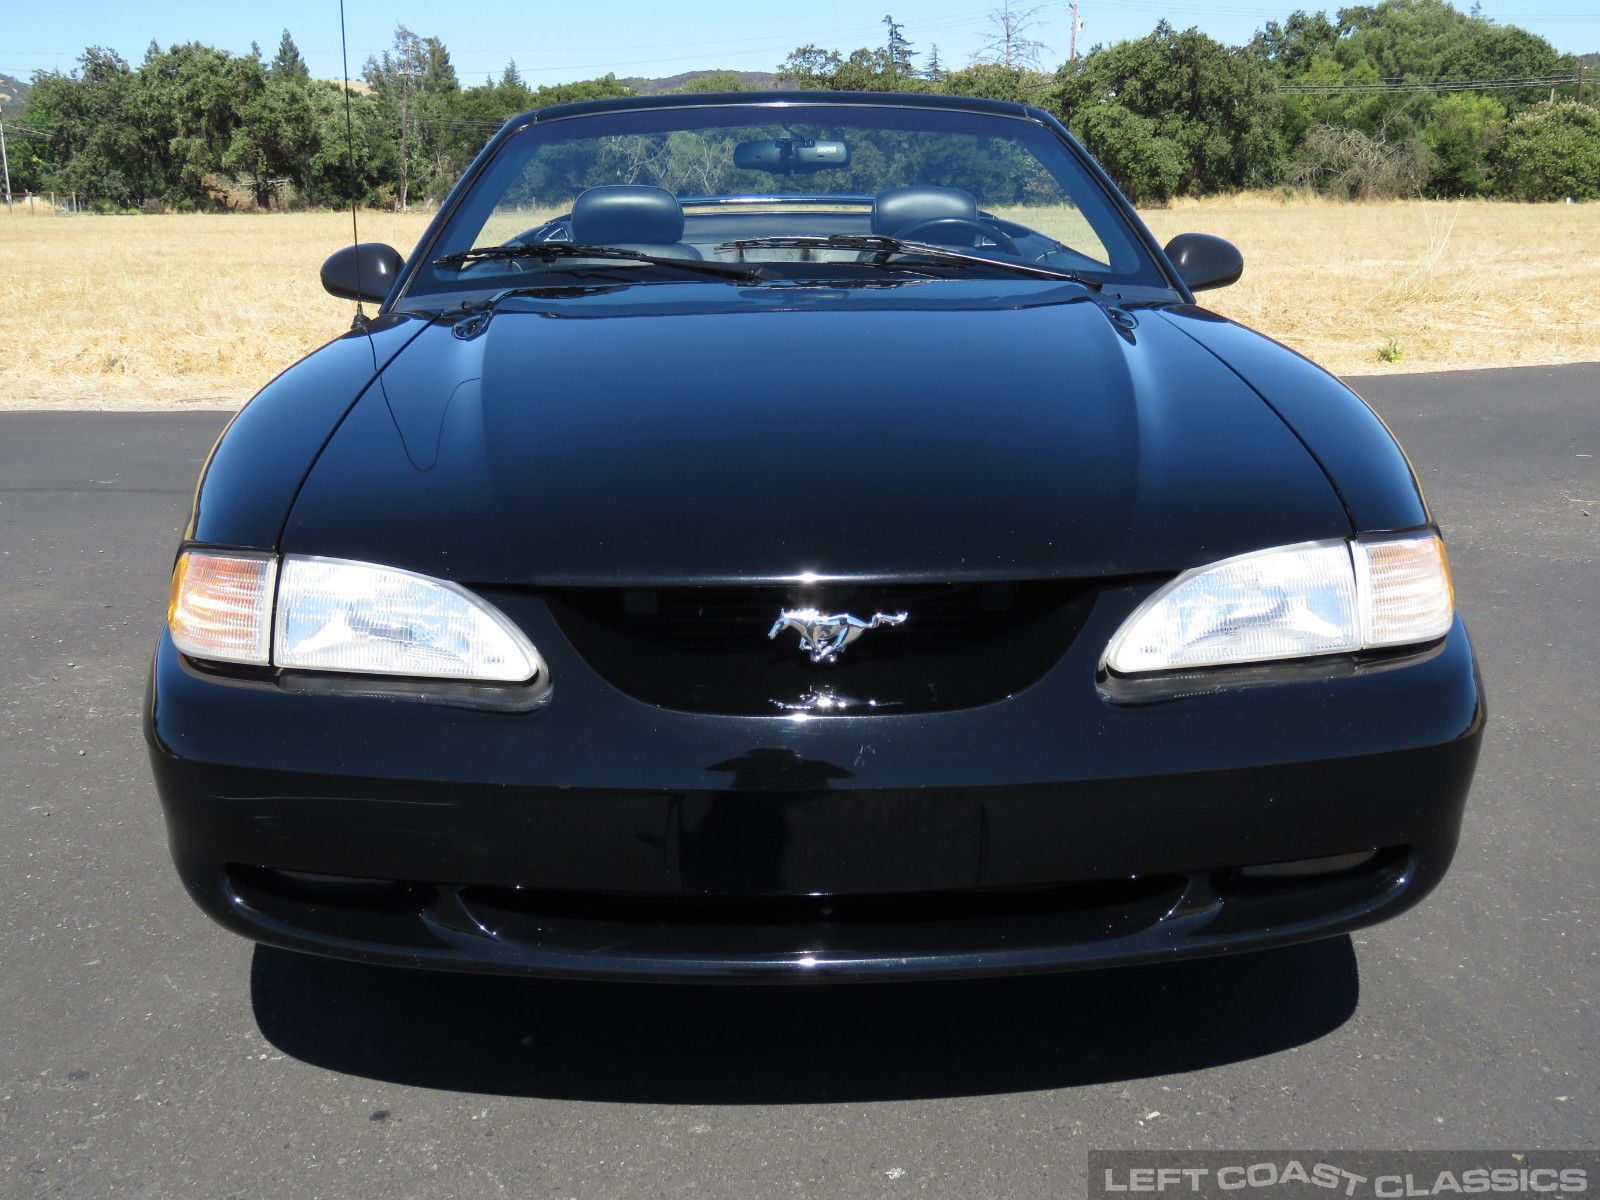 Awesome 1995 ford mustang gt 1995 ford mustang convertible gt 82k miles california car clean 2019